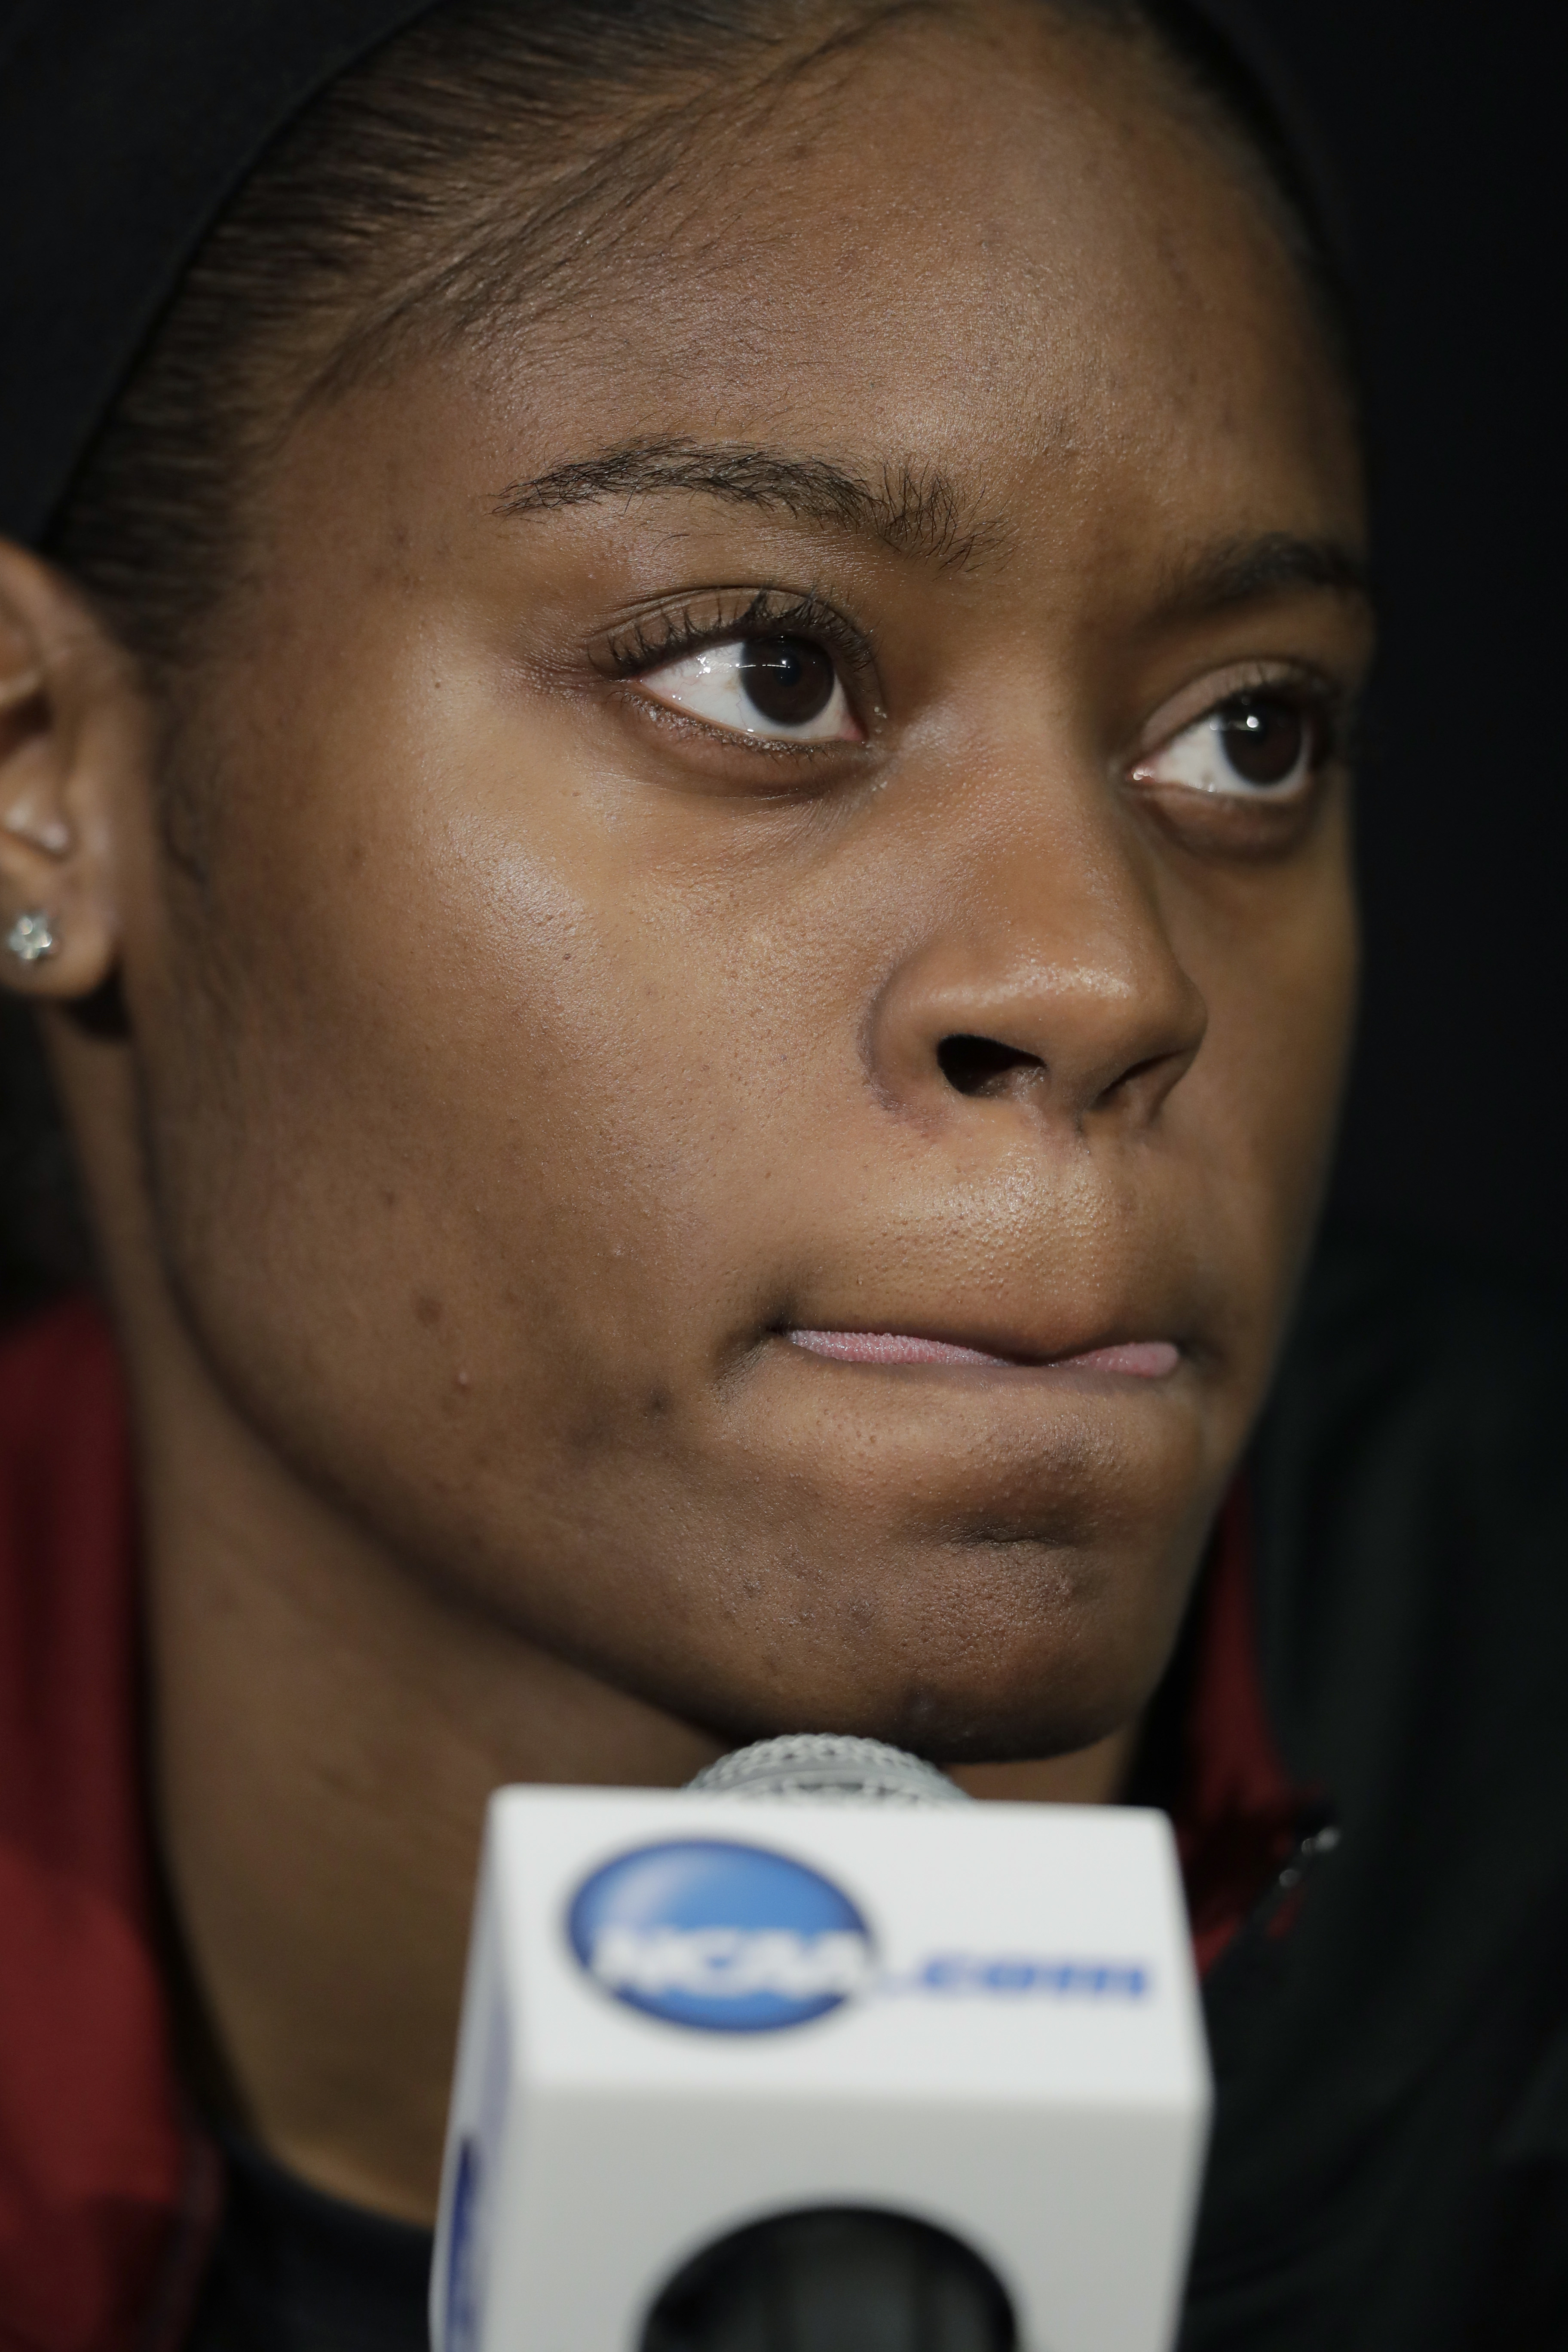 South Carolina guard Kaela Davis listens to a question during a news conference at the women's Final Four college basketball tournament, Saturday, April 1, 2017, in Dallas. South Carolina will play Mississippi State on Sunday in the NCAA Championship. (AP